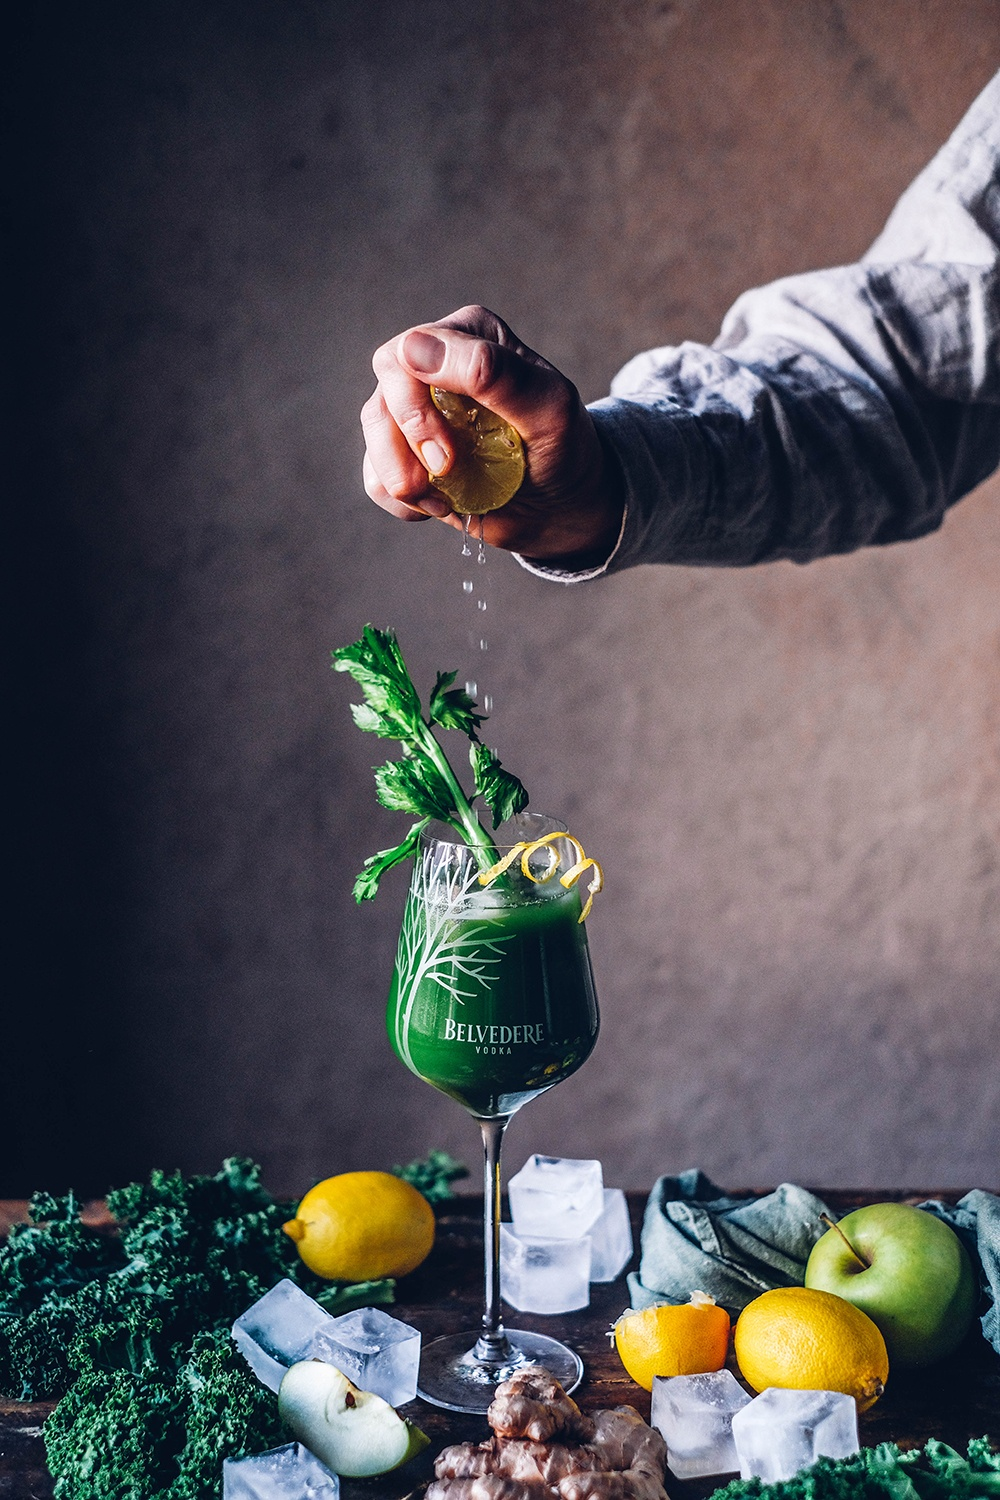 Superfood Cocktails with Kale und Turmeric